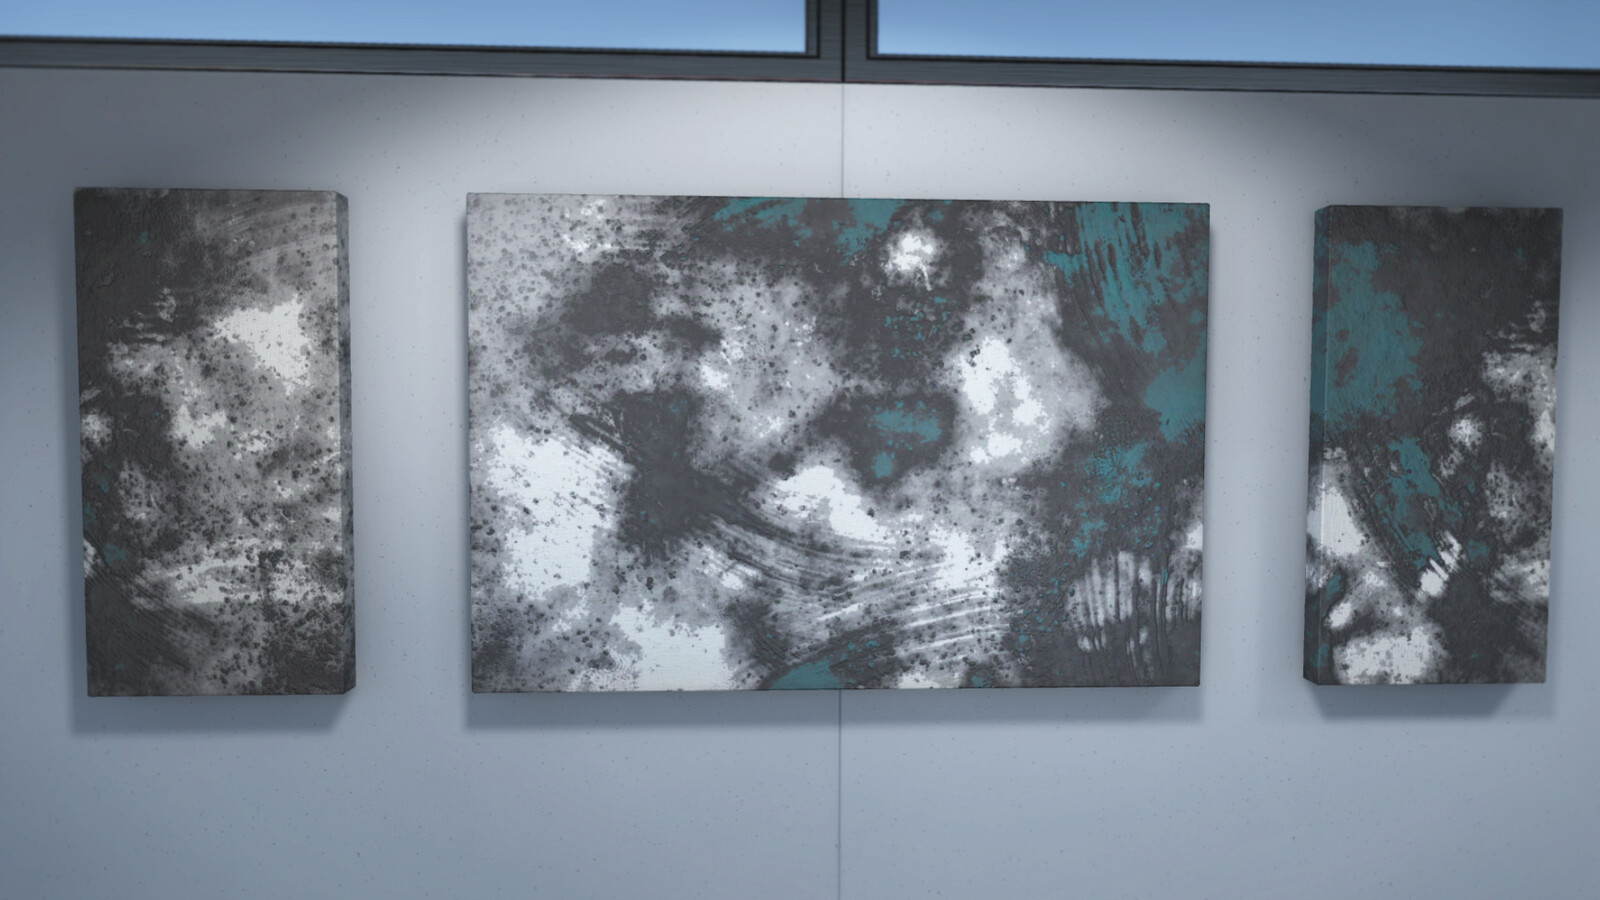 A few close-ups of the paintings in Unity